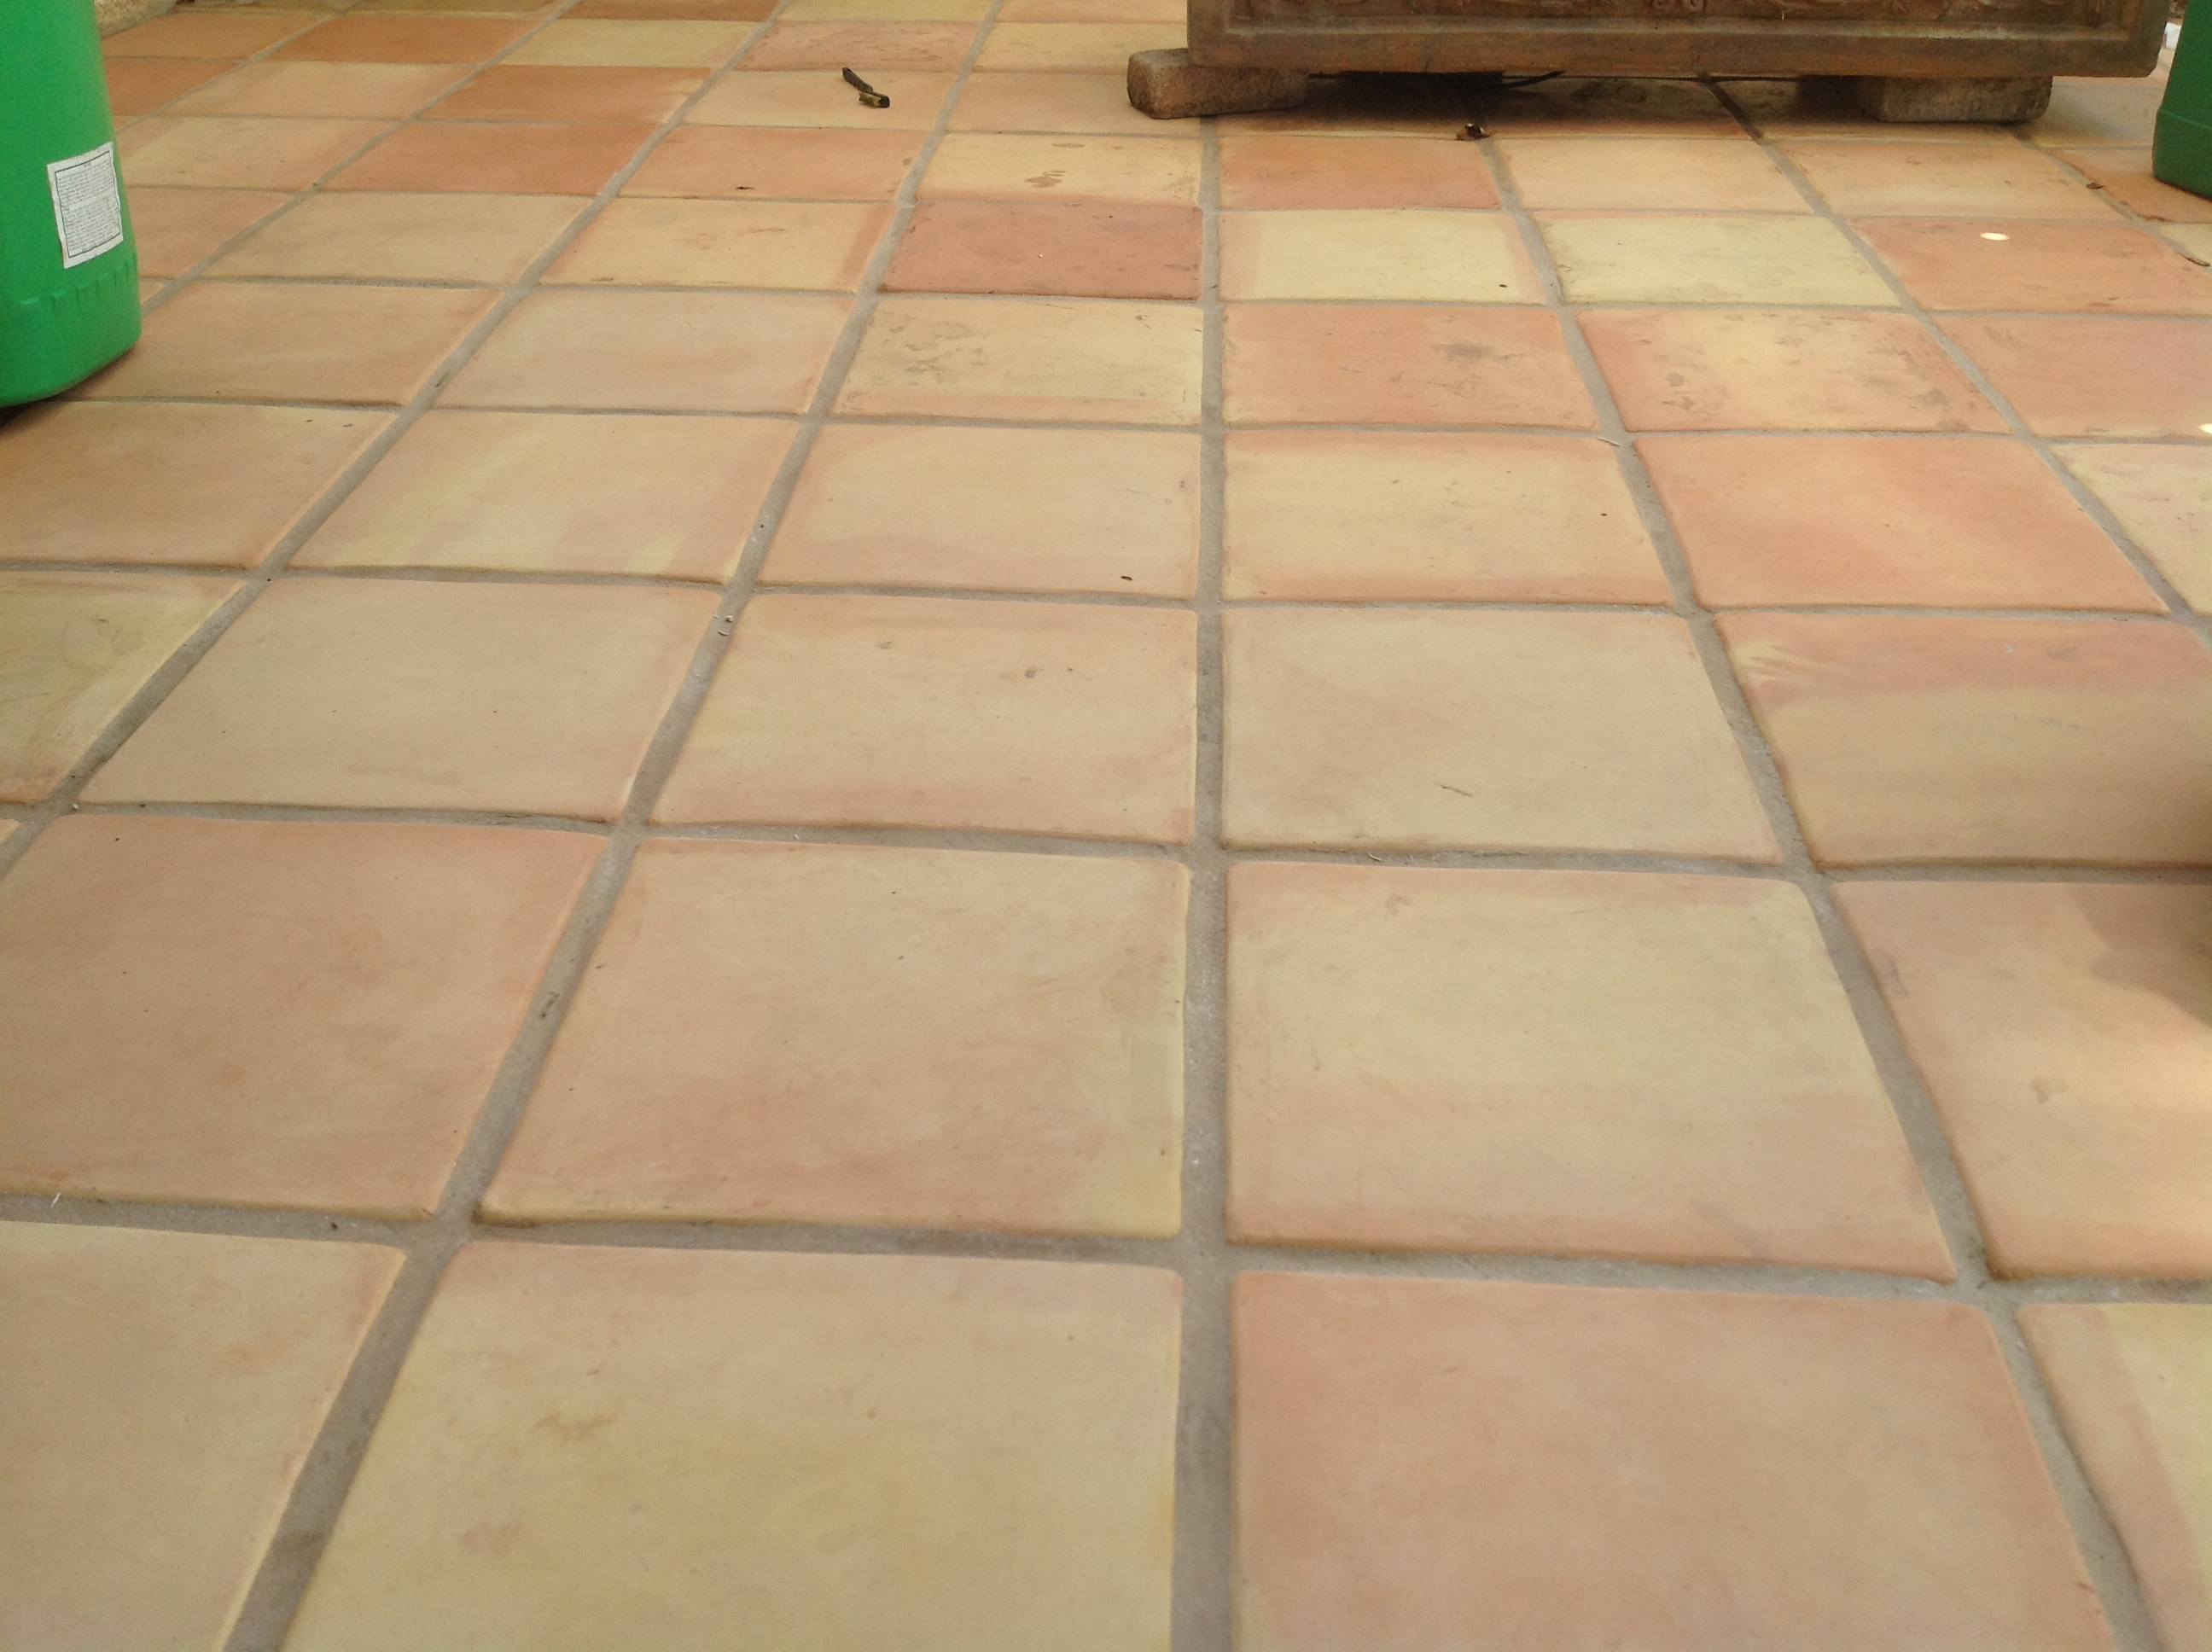 Superior Saltillo Tile Floor Refinishing Restoration Without Messy - Clean tile floors without residue